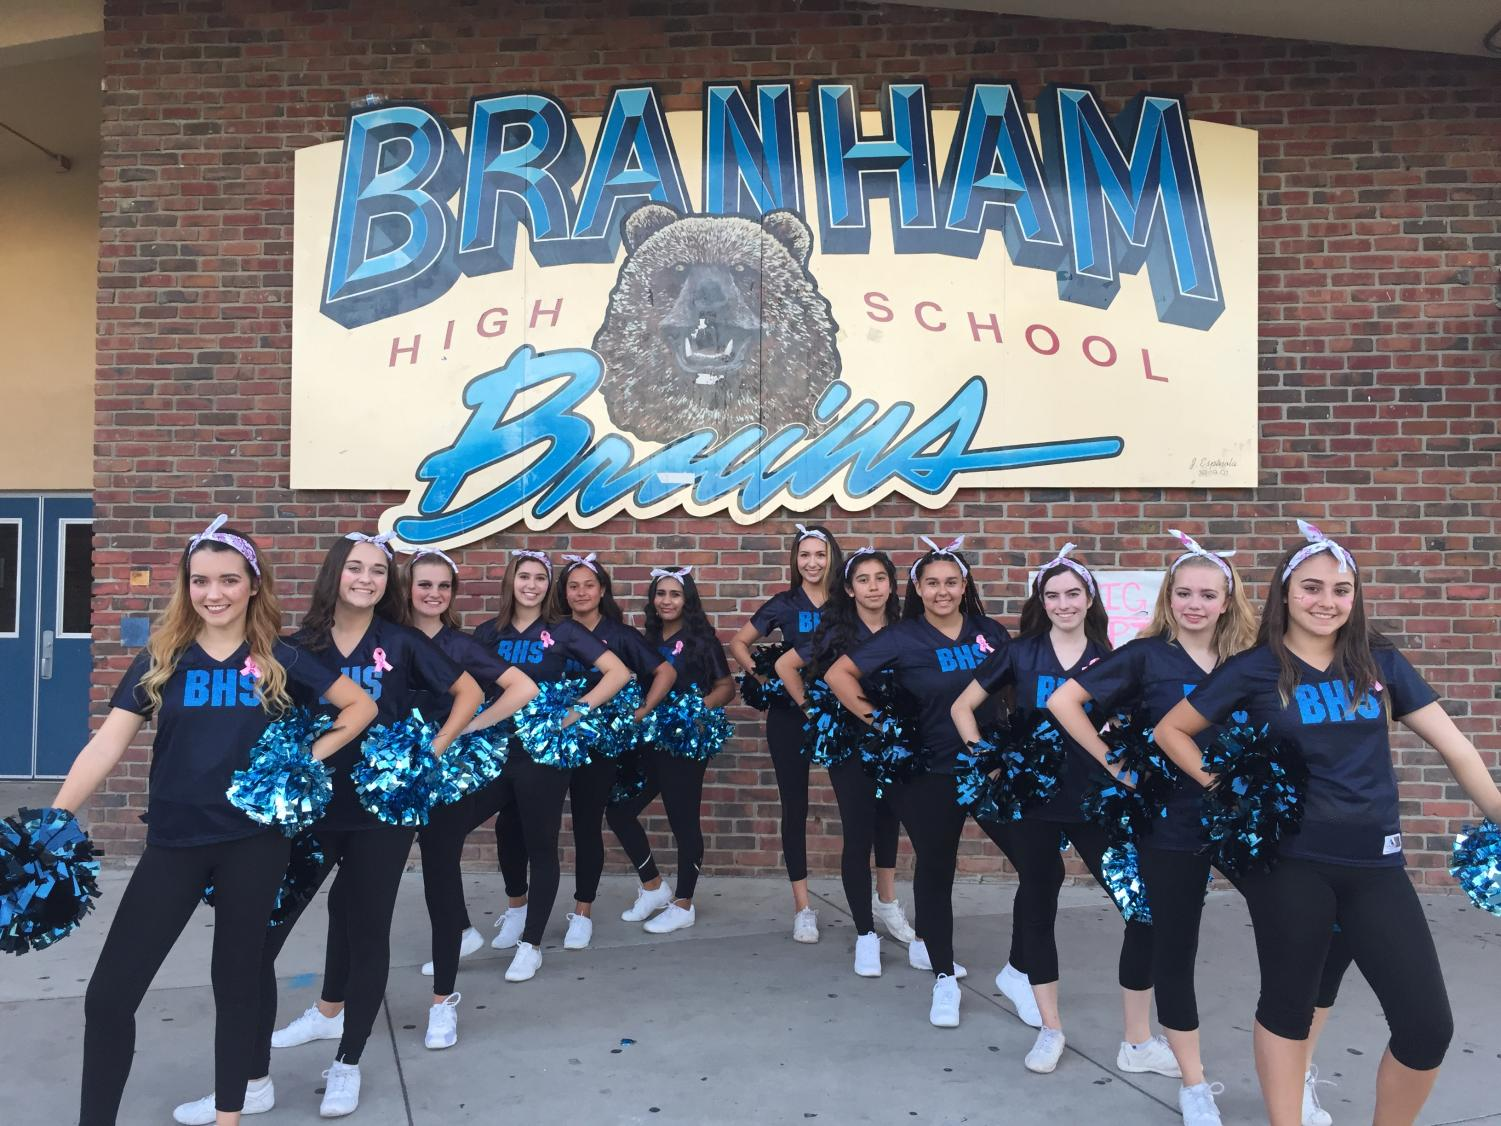 The Branham High School Dance Team poses for a picture in formation outside the large gym during the day.